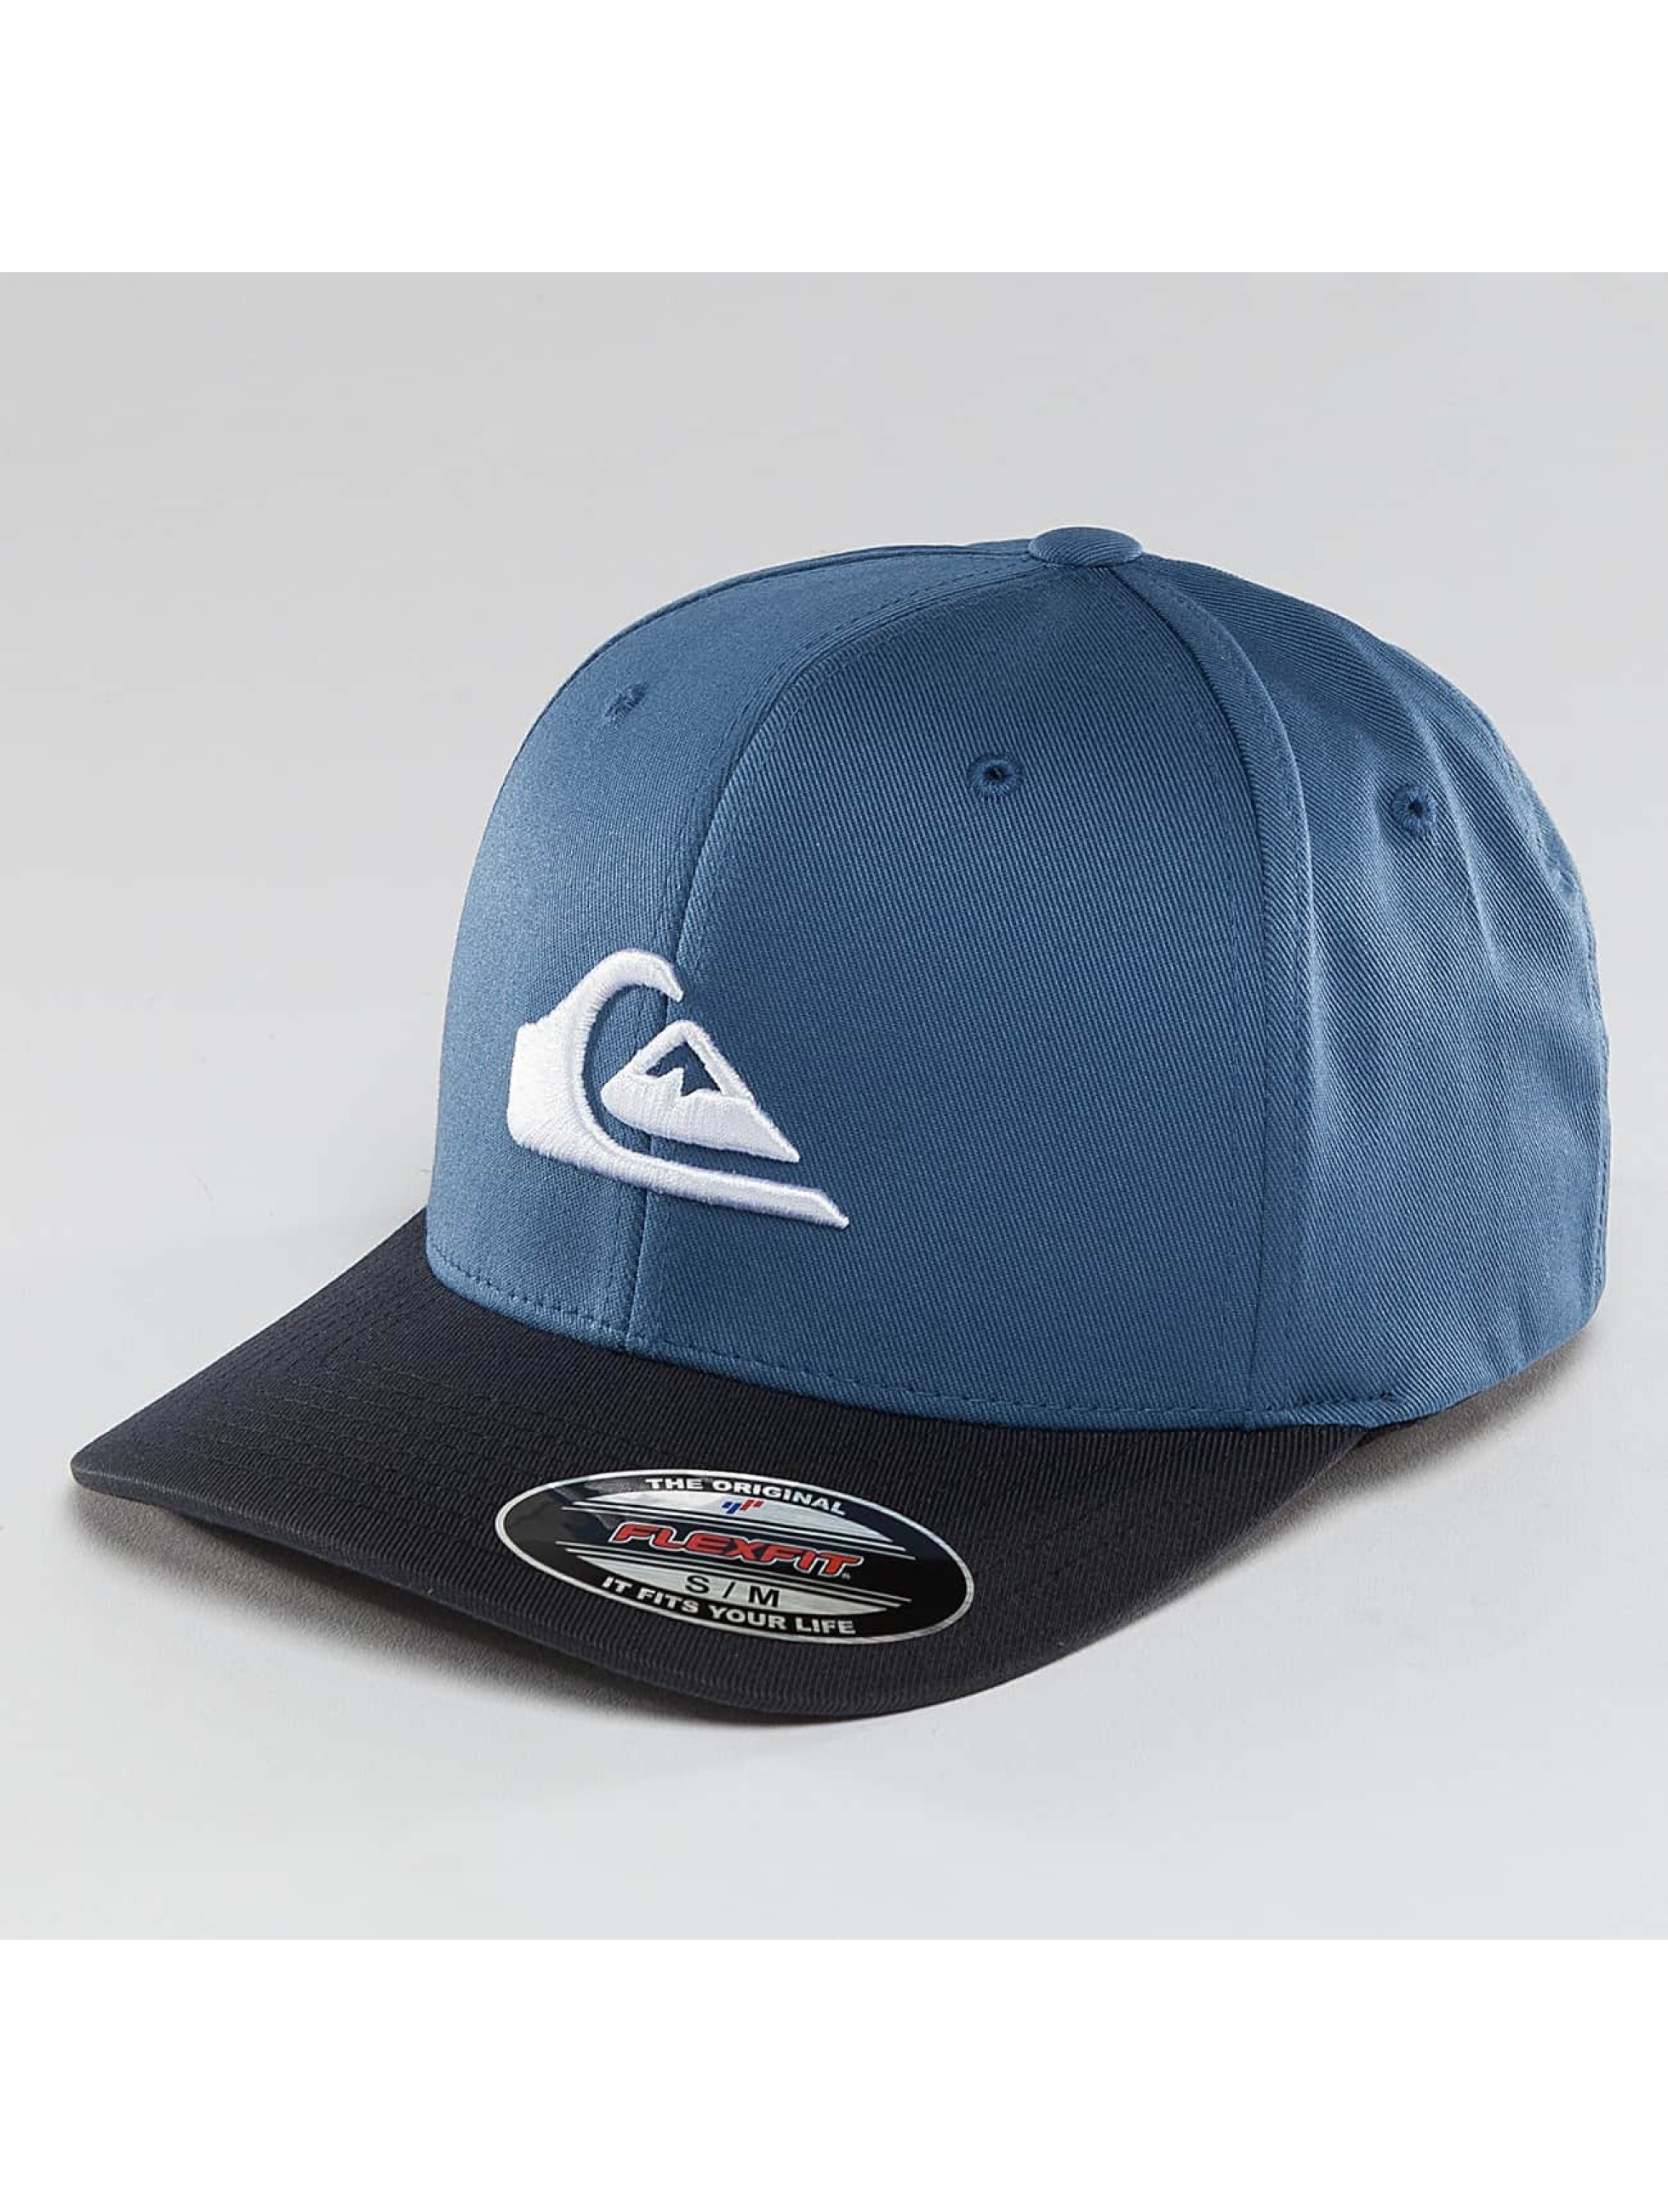 Quiksilver Casquette Snapback & Strapback Mountain And Wave bleu